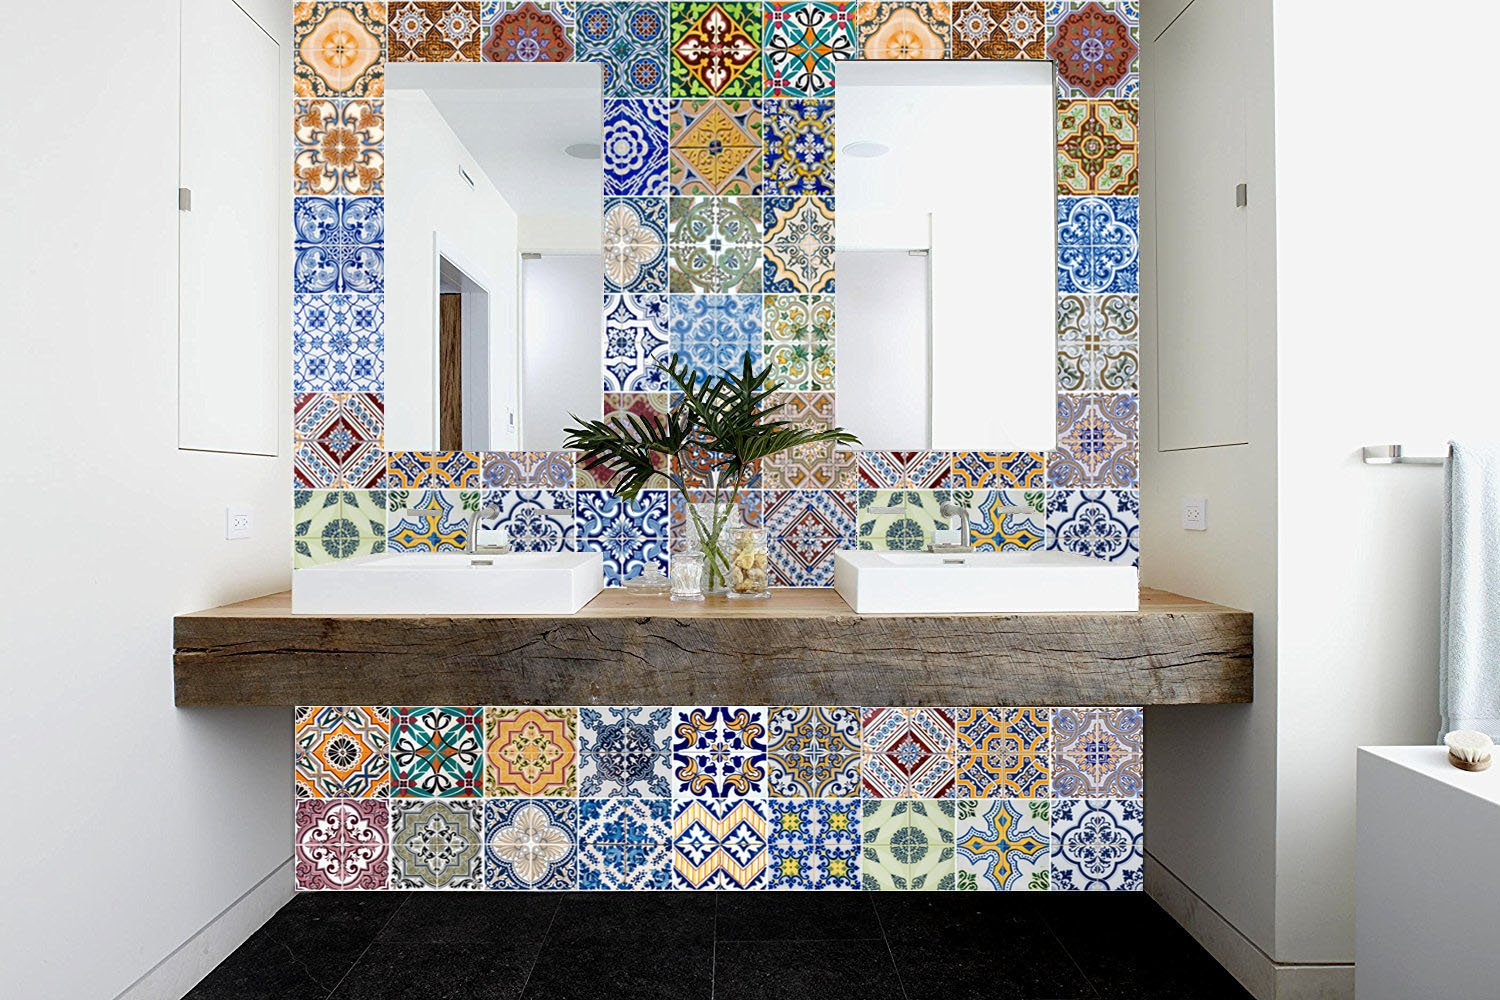 FLFK 48 Units Mexican Talavera Peel & Stick Vinyl Adhesive Tile Stickers for Kitchen and Bathroom Backsplash Decal 7.87x7.87 Inch (20x20cm) by FLFK (Image #1)